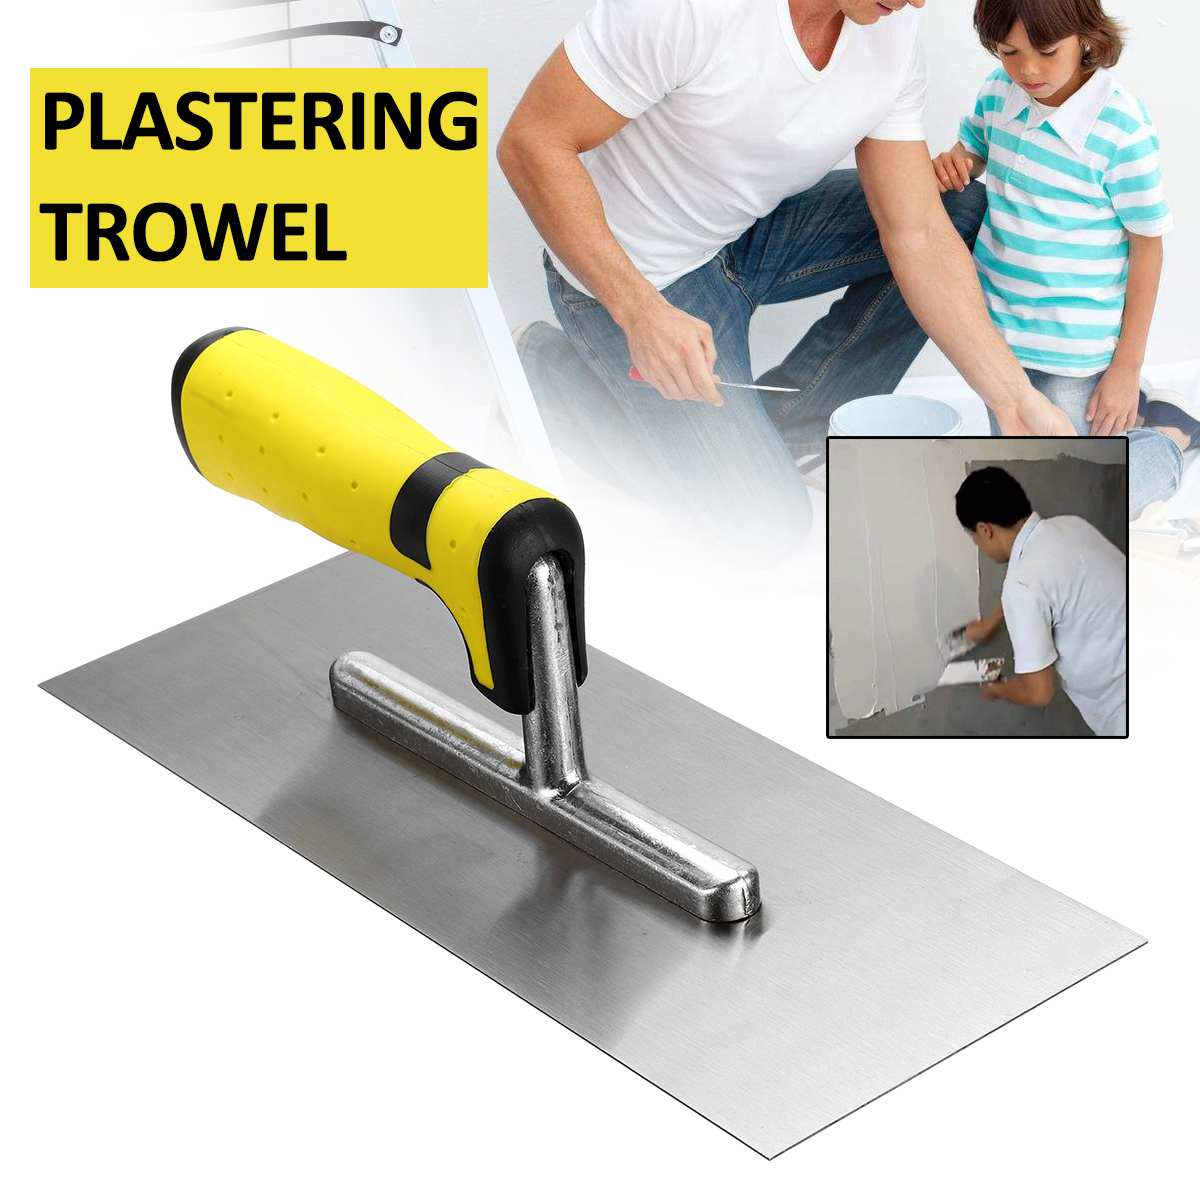 11inch Professional Stainless Steel Plasterers Plastering Trowel 0.9mm With Comfort Handle Putty Knife DIY Hand Tools